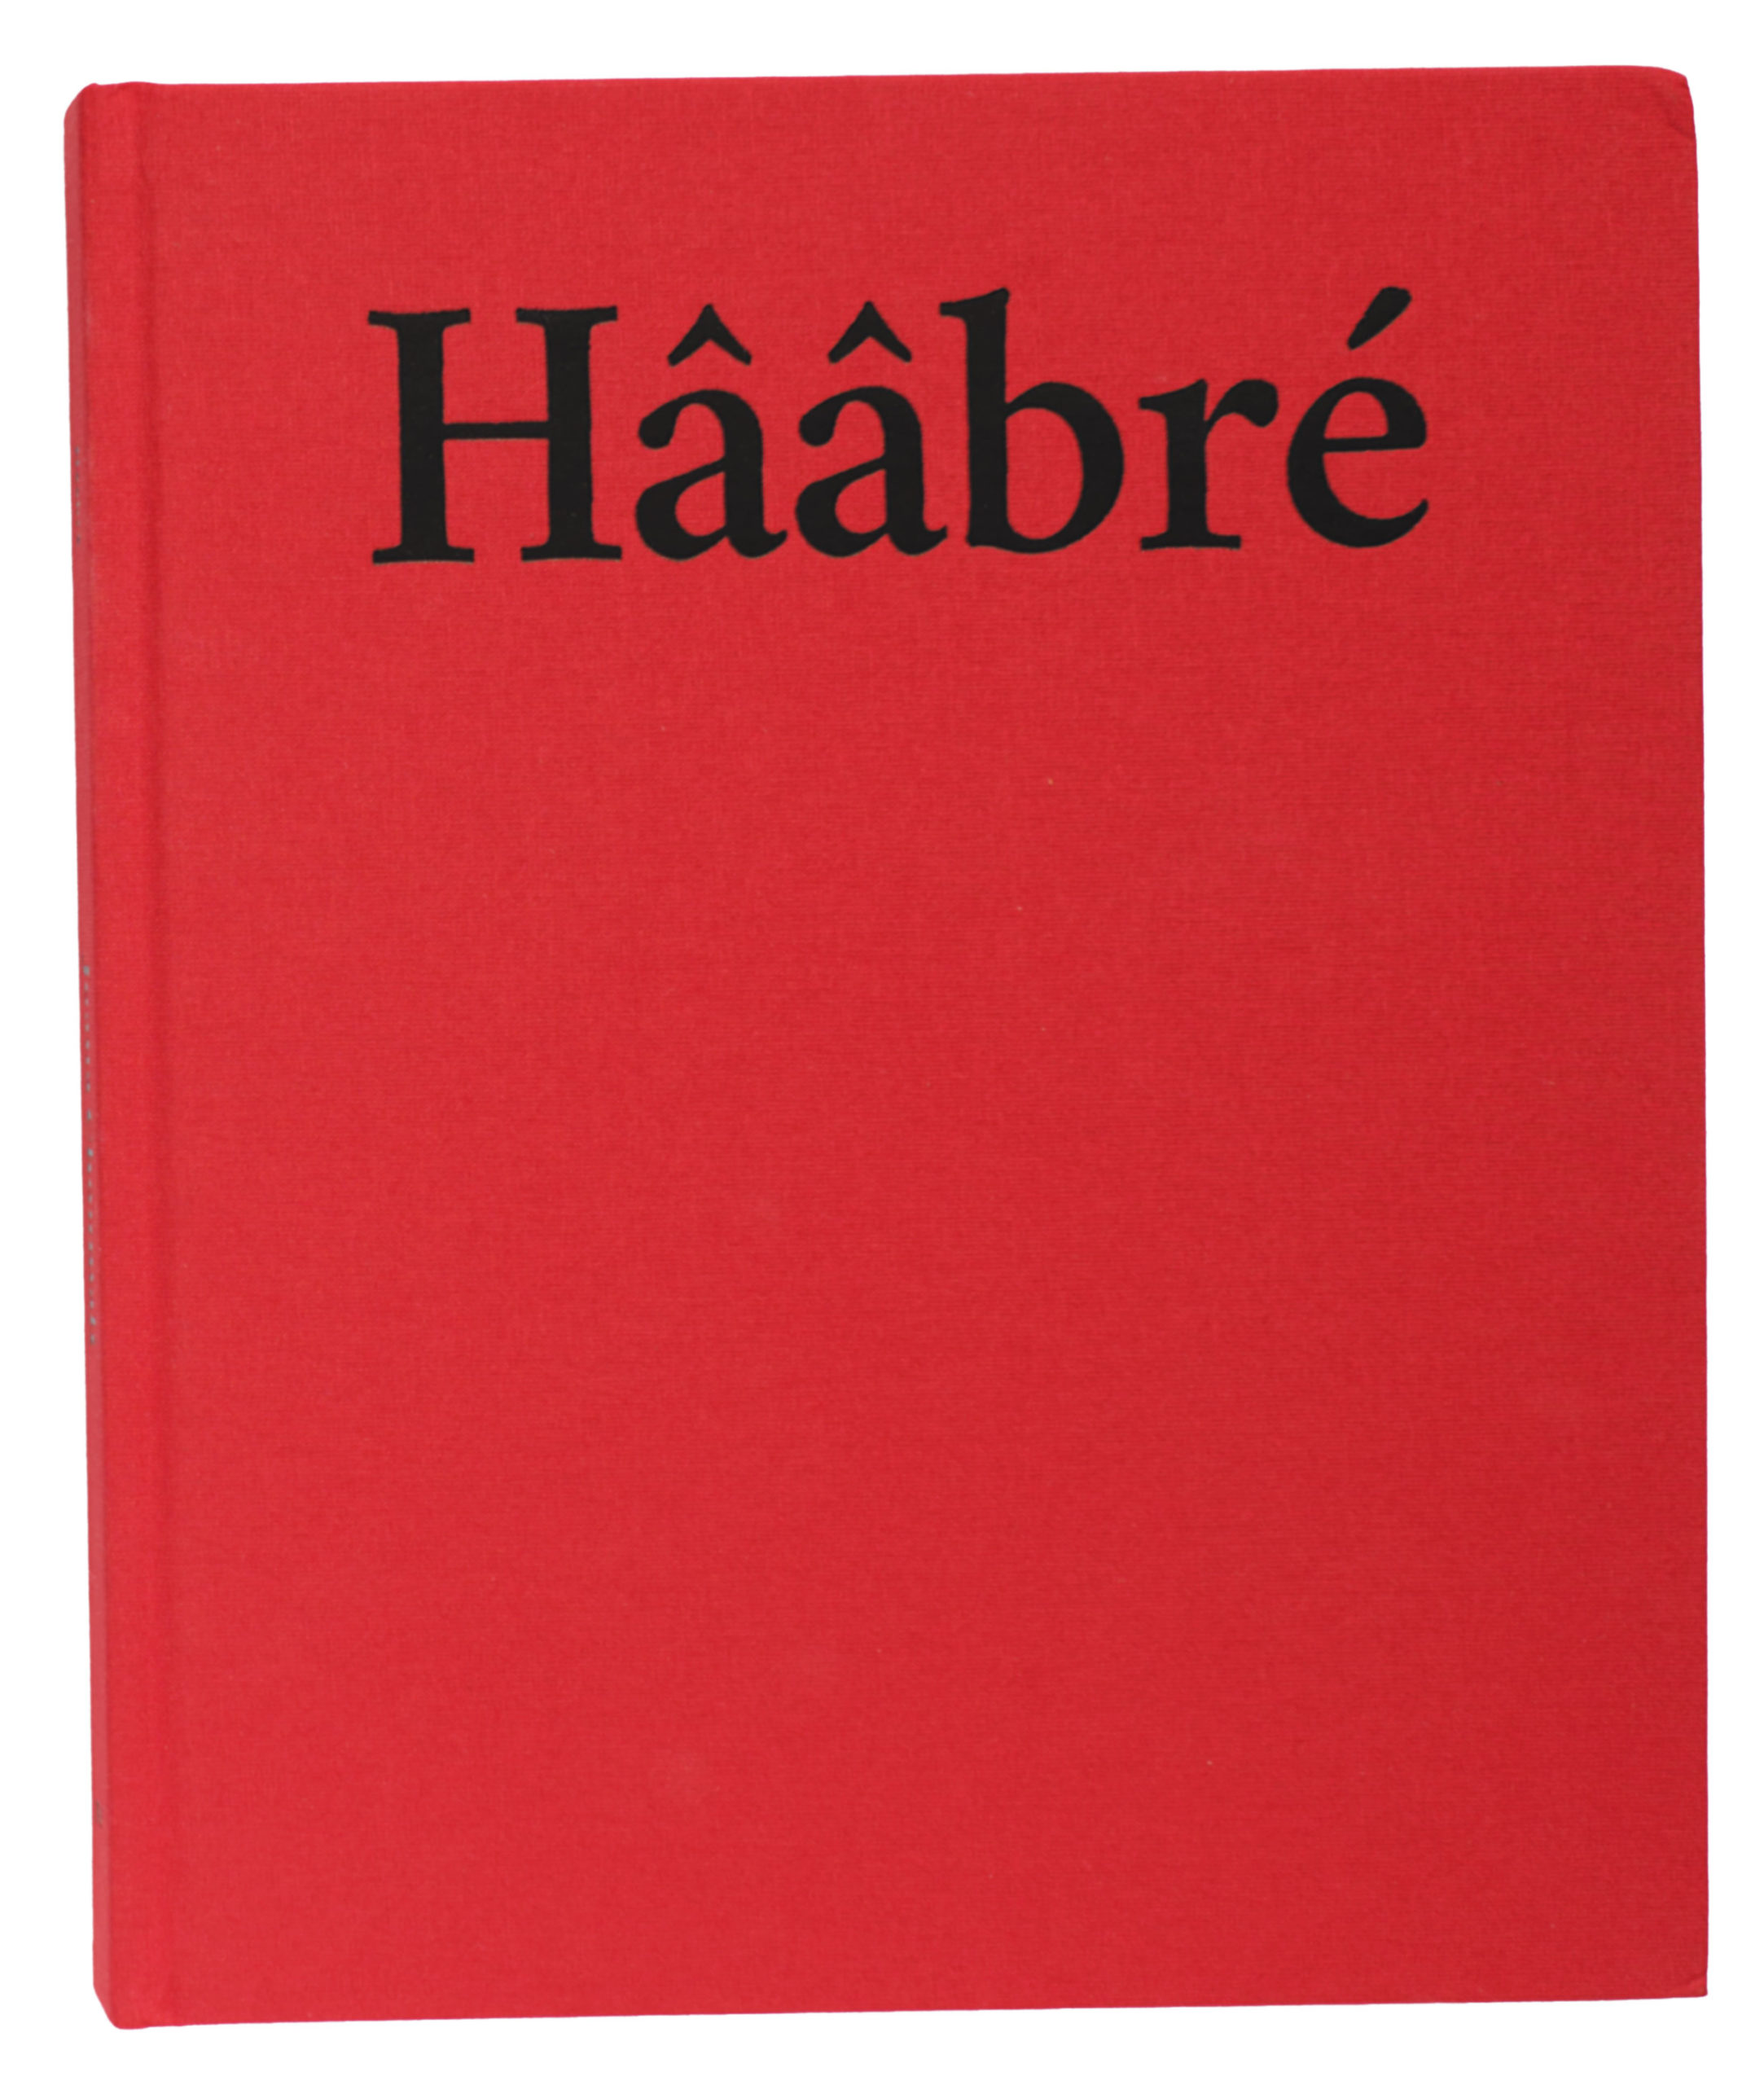 Africainthephotobook-delpire-haabre-couve